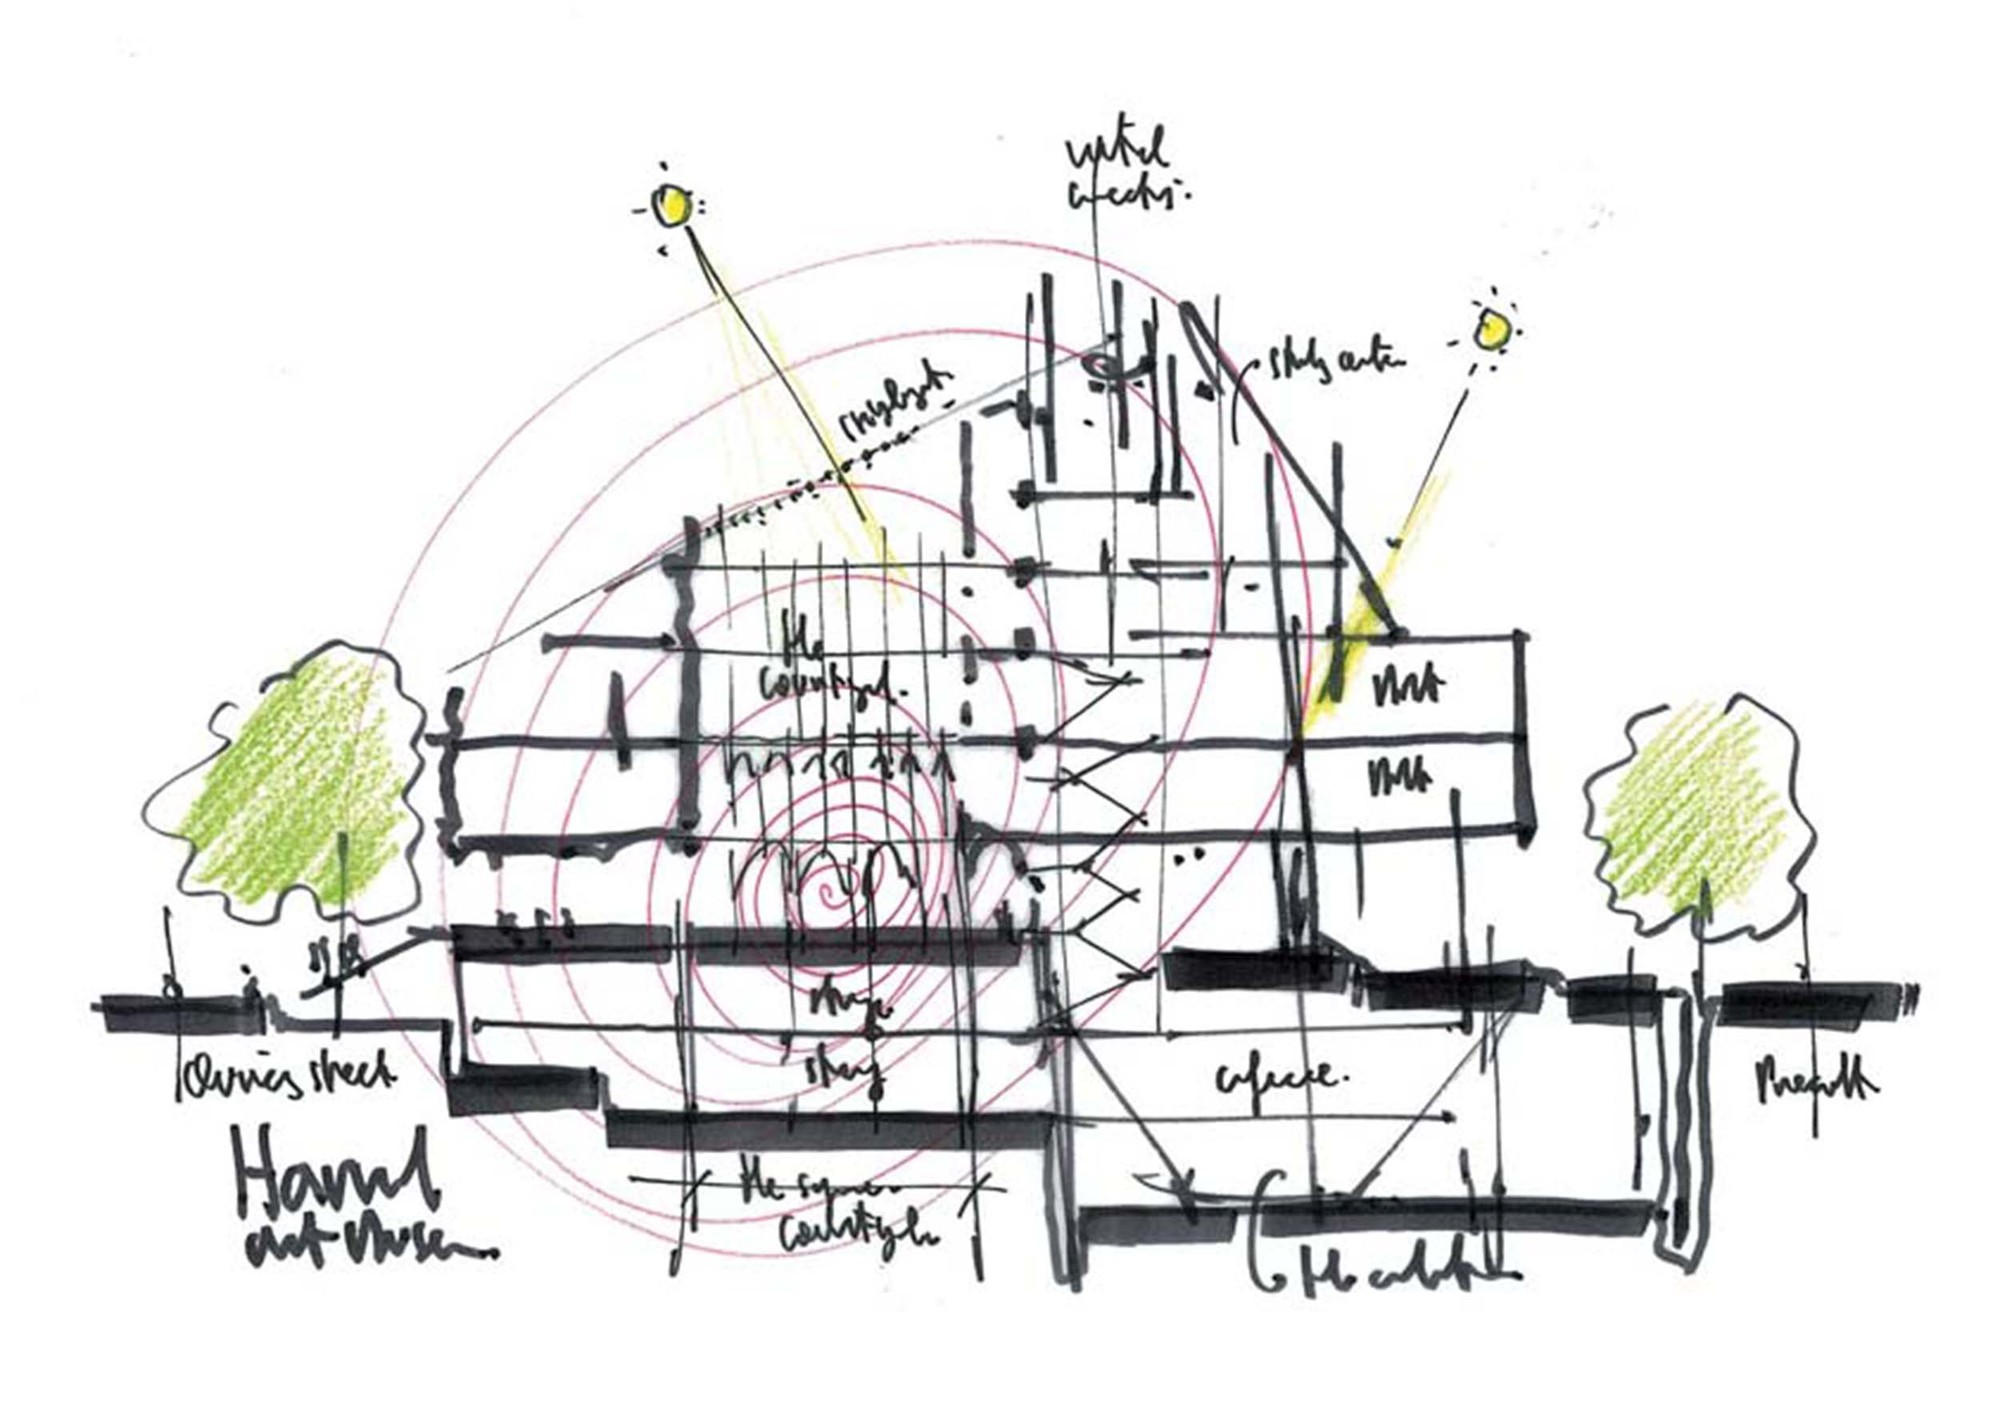 rainforest structure diagram towbar wiring gallery of harvard art museums renovation and expansion / renzo piano + payette - 33